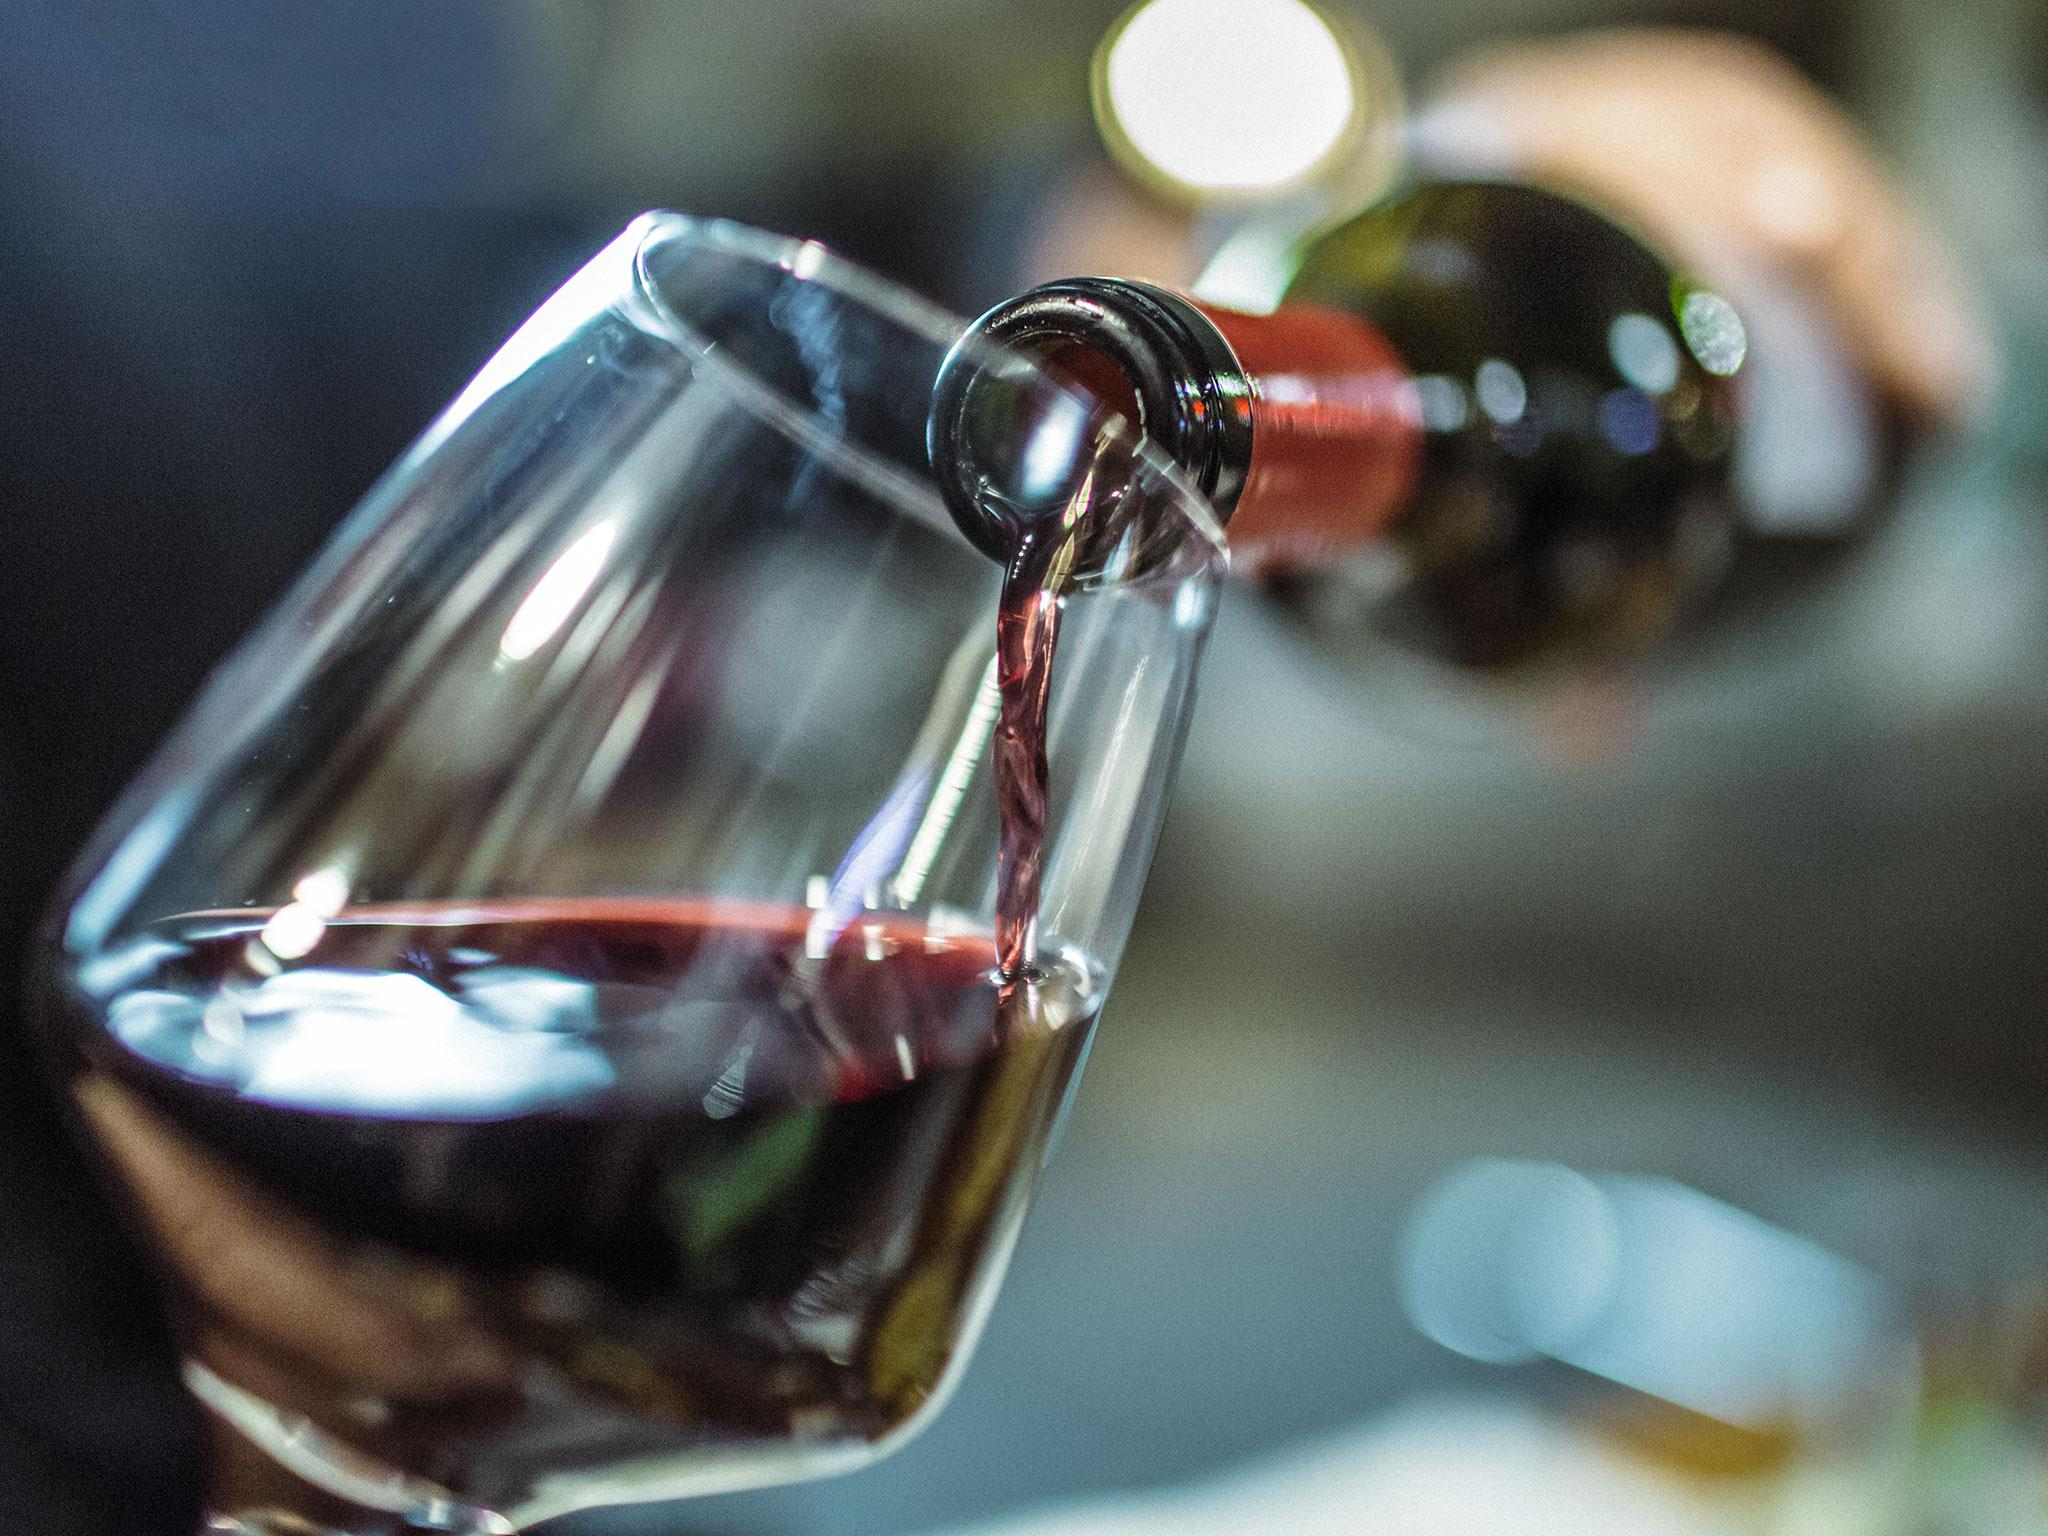 One or two glasses of wine per day could protect you from stroke, says study